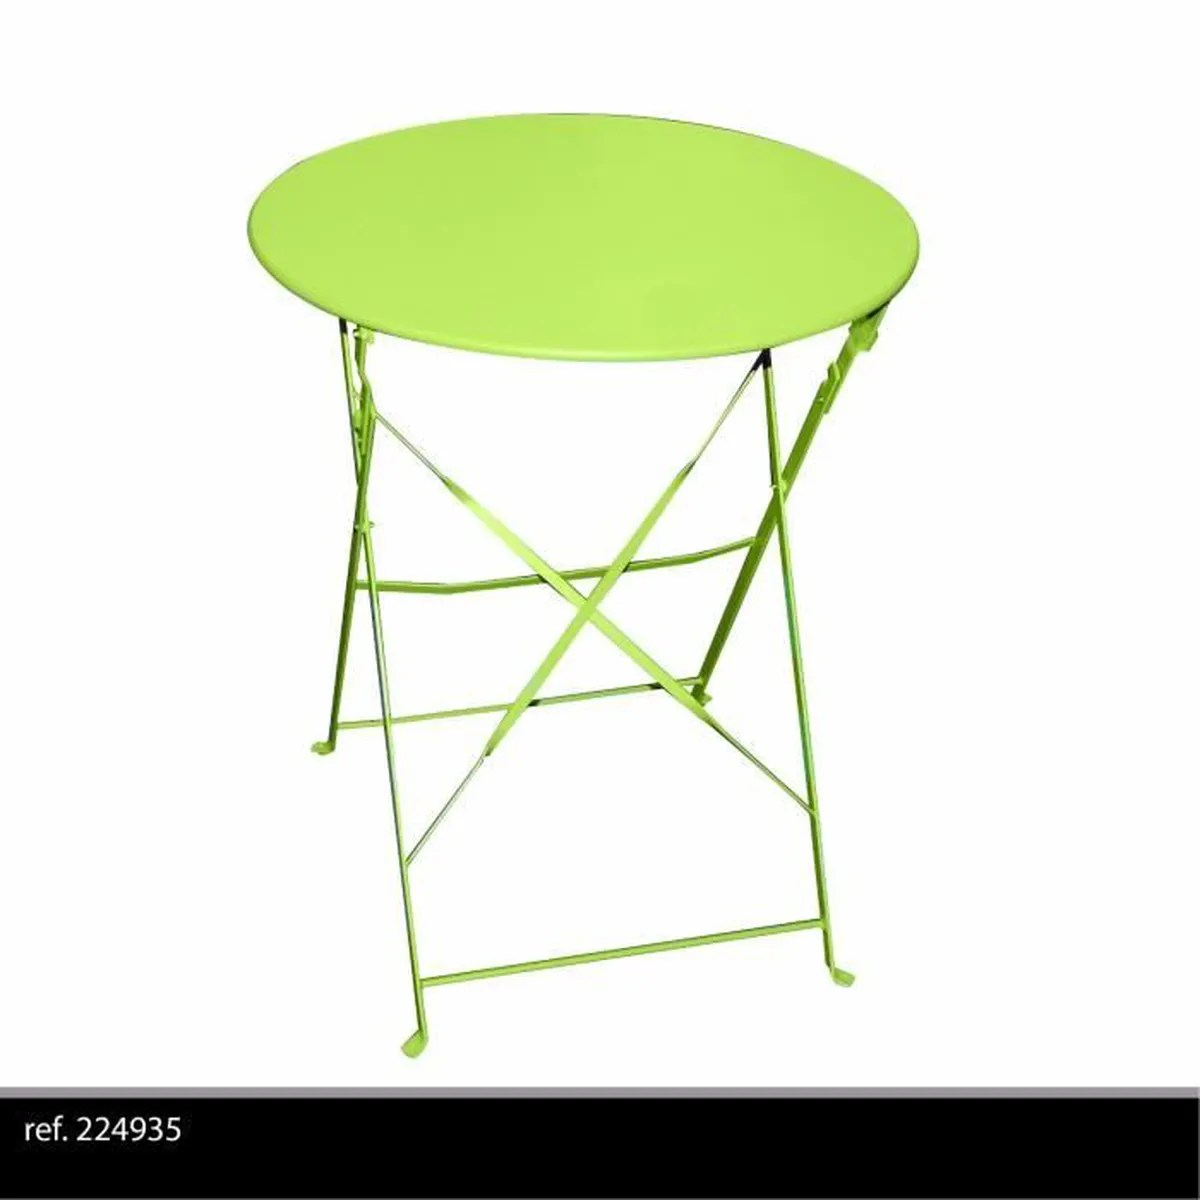 Table Exterieur Ronde Table Ronde De Jardin En Metal Bistro Cafe Salon Pliante Verte Pliable Exterieur